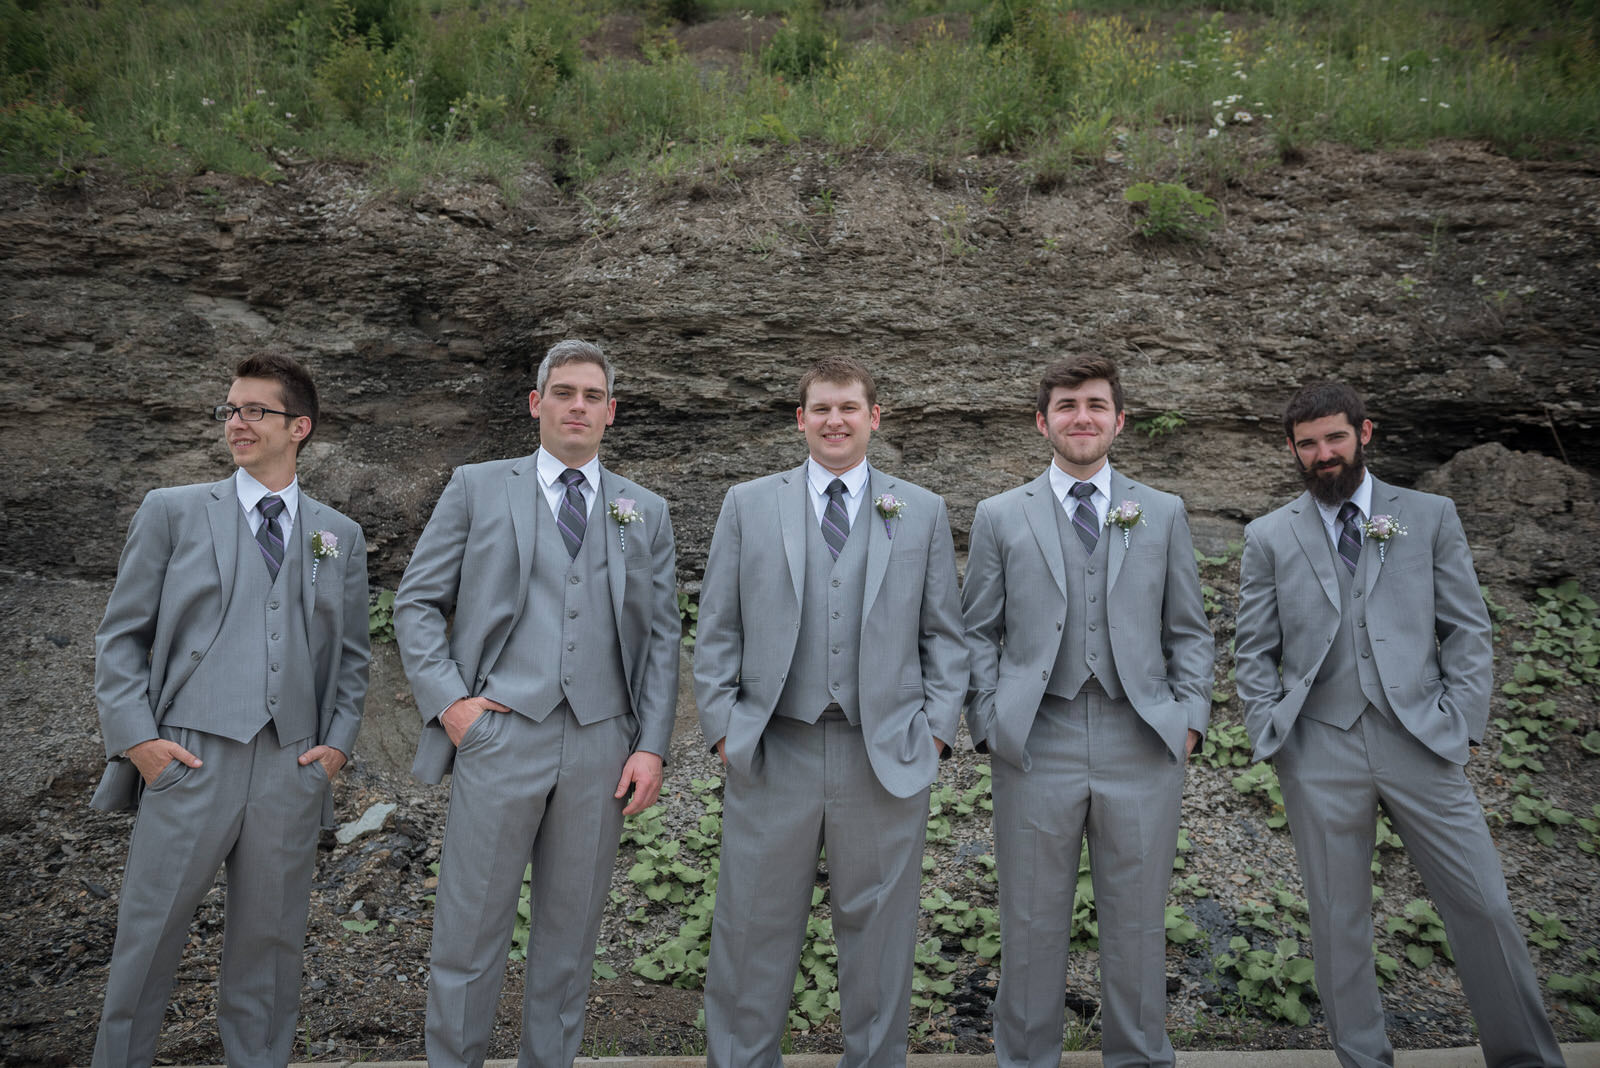 wedding-athens-ohio-photographer-photography-university-walter-hall-groomsmen-hampton inn